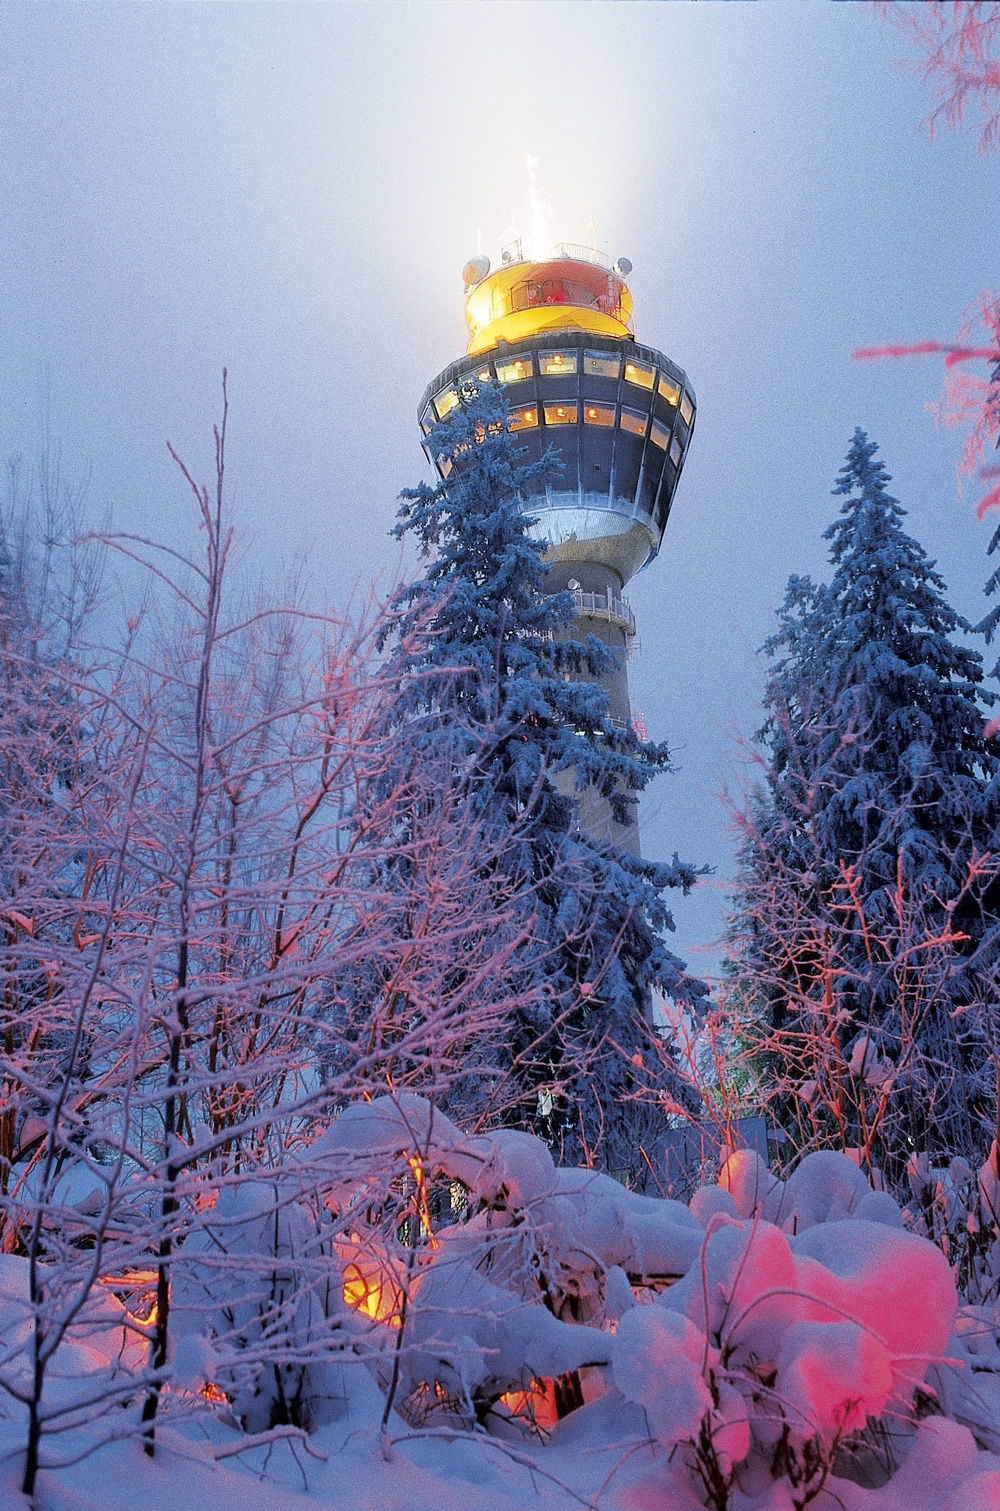 The Kuopio Puijo Tower in eastern Finland is the first of its kind in the Nordic regions. This observation tower has that staple of all such towers: a revolving restaurant. Image © Visit Finland.